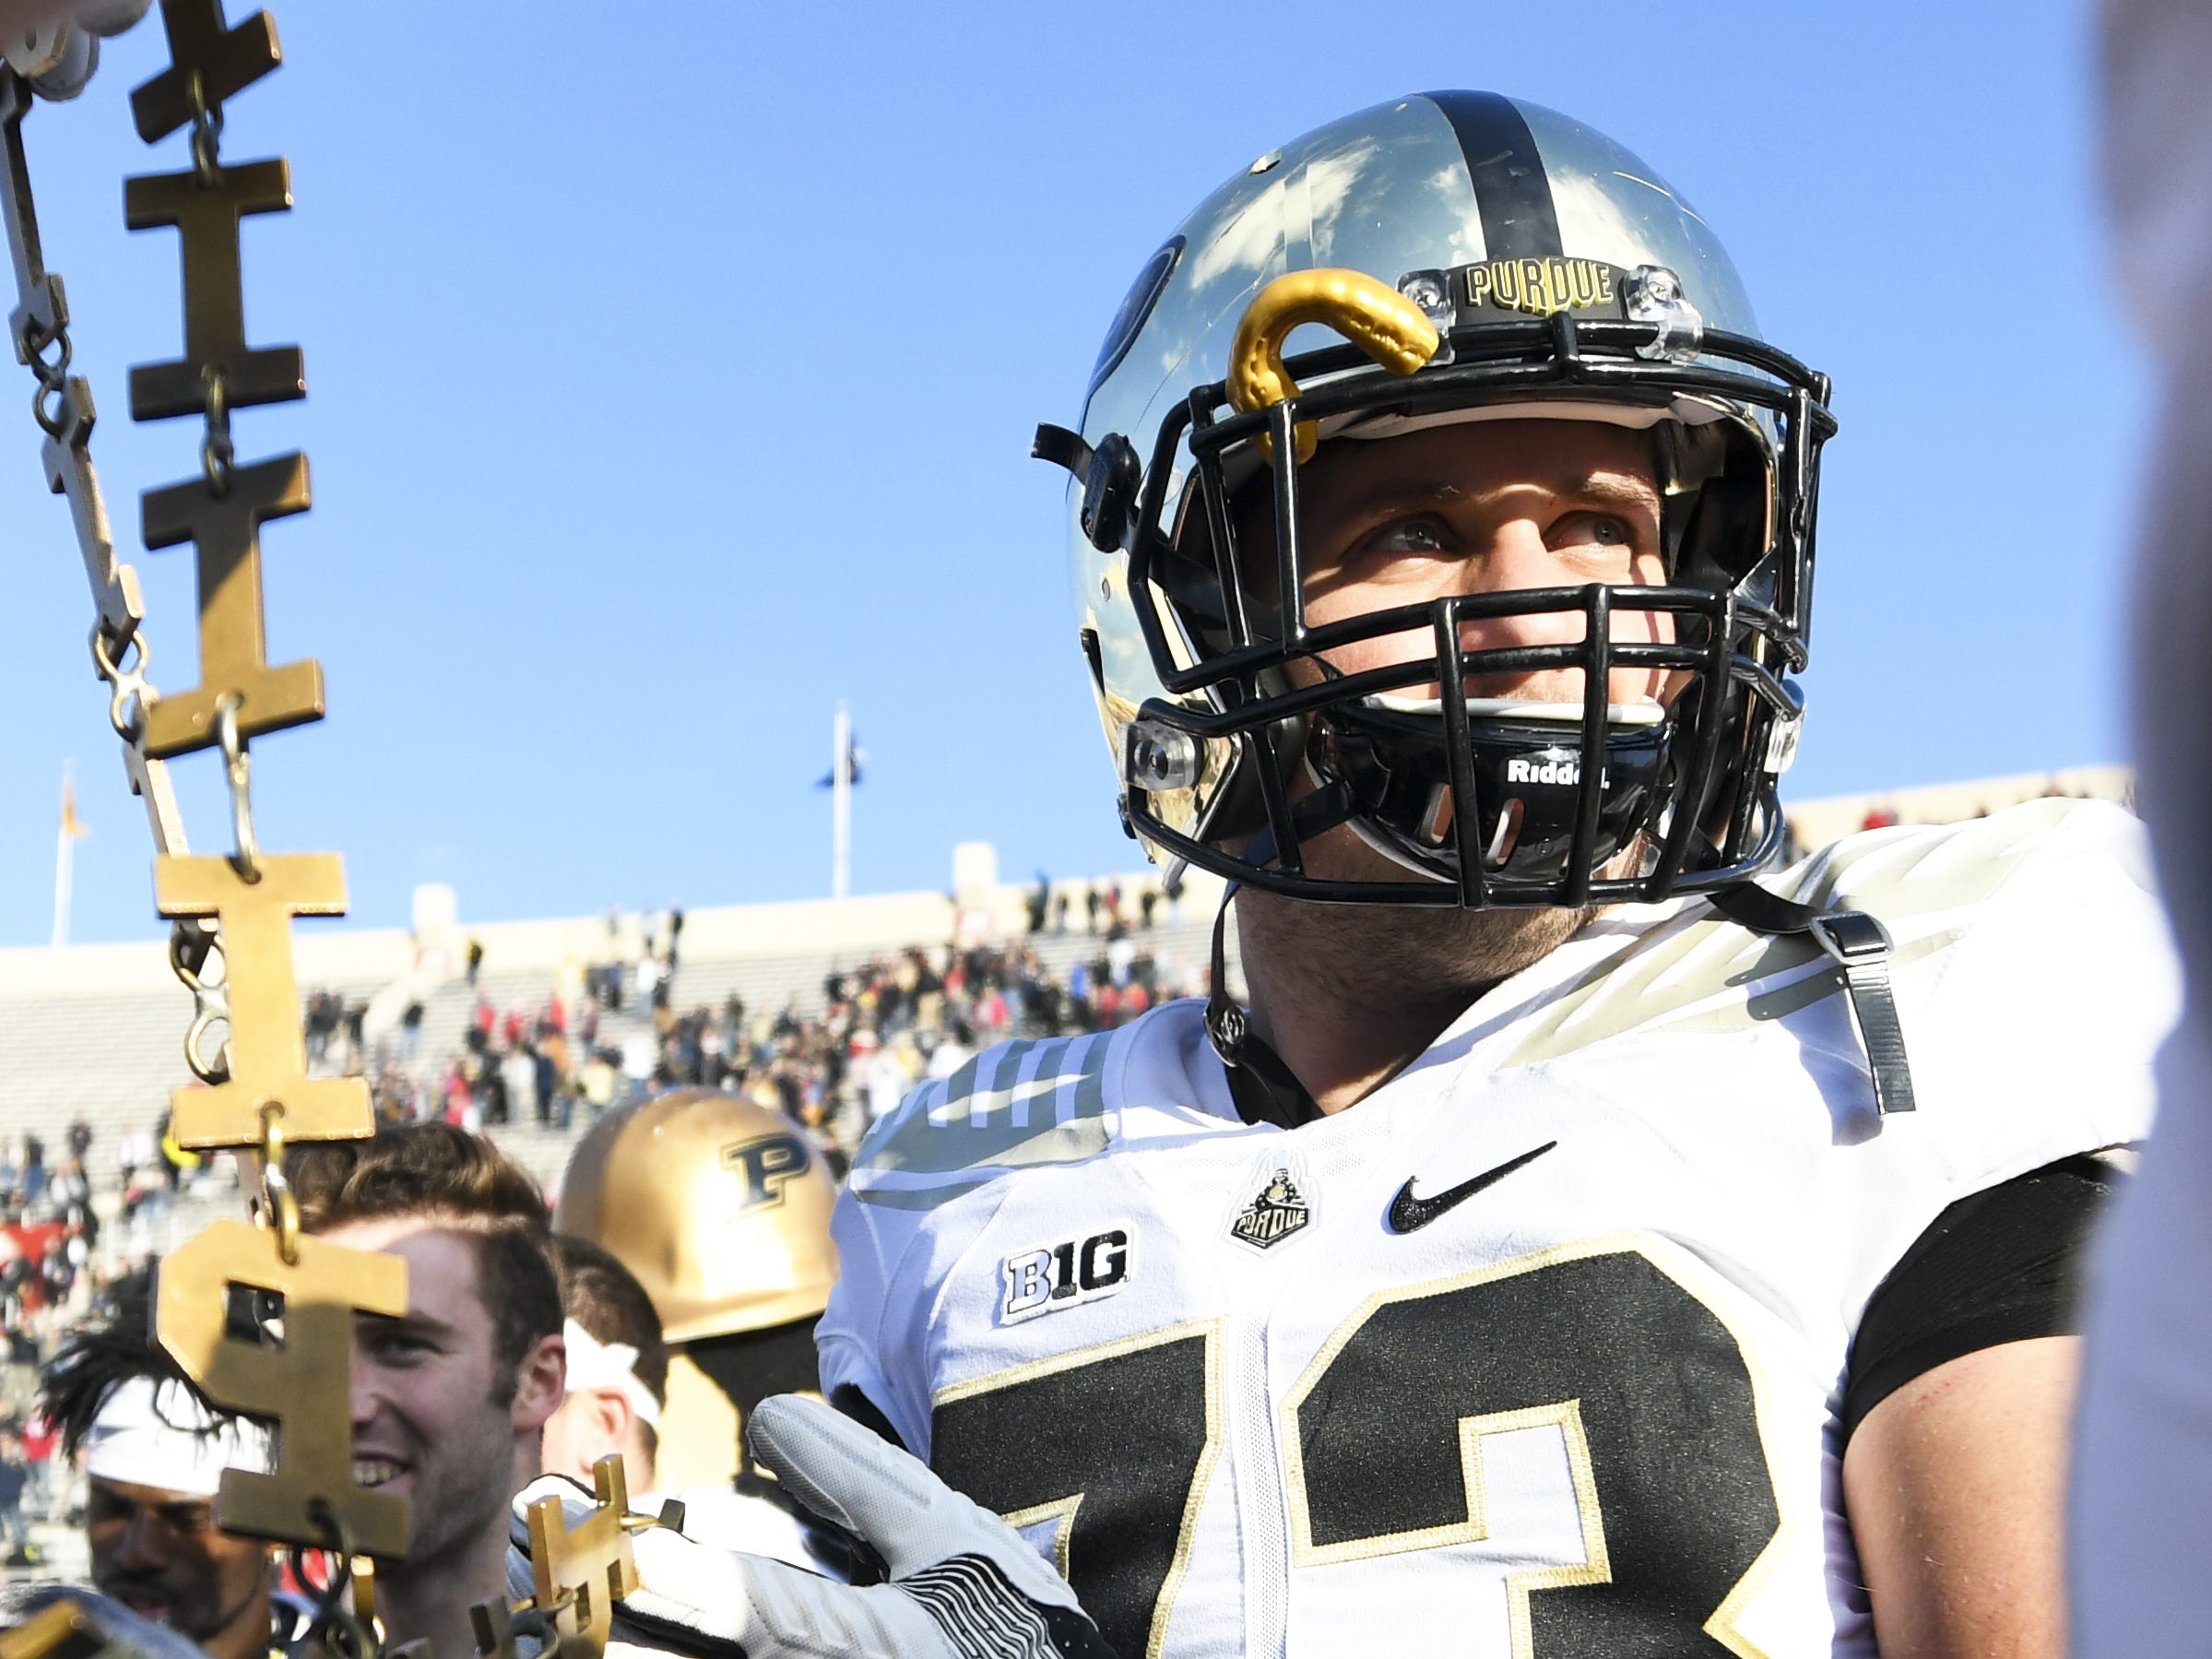 Purdue Boilermakers offensive lineman Ethan Smart (73) celebrates after defeating Indiana at Memorial Stadium in Bloomington Ind., on Saturday, Nov. 24, 2018.